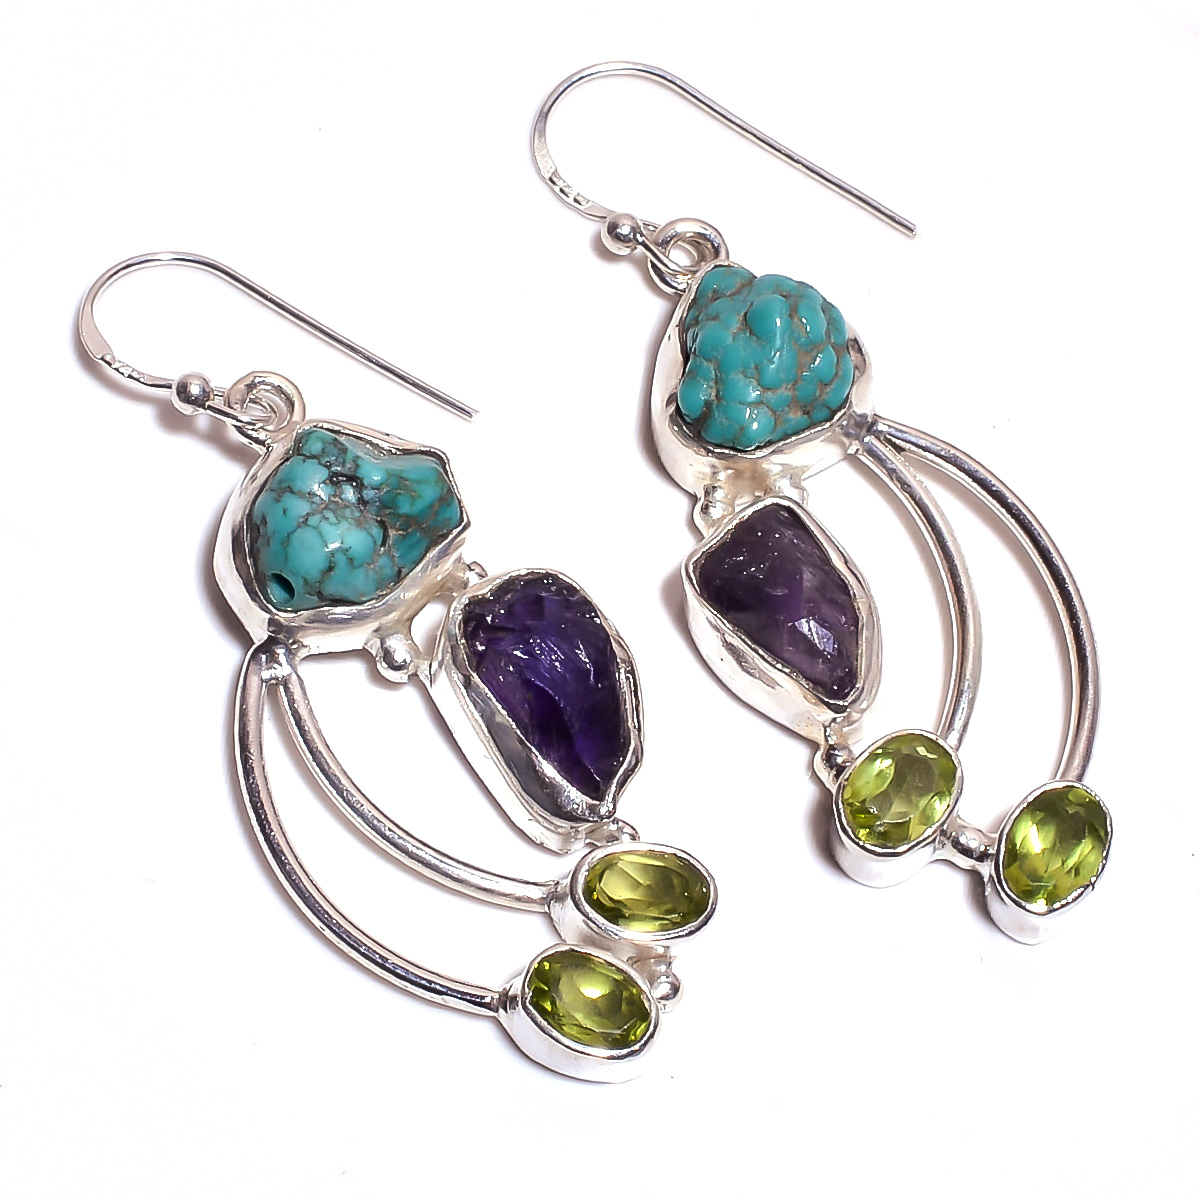 Turquoise Amethyst Raw Gemstone 925 Sterling Silver Earrings